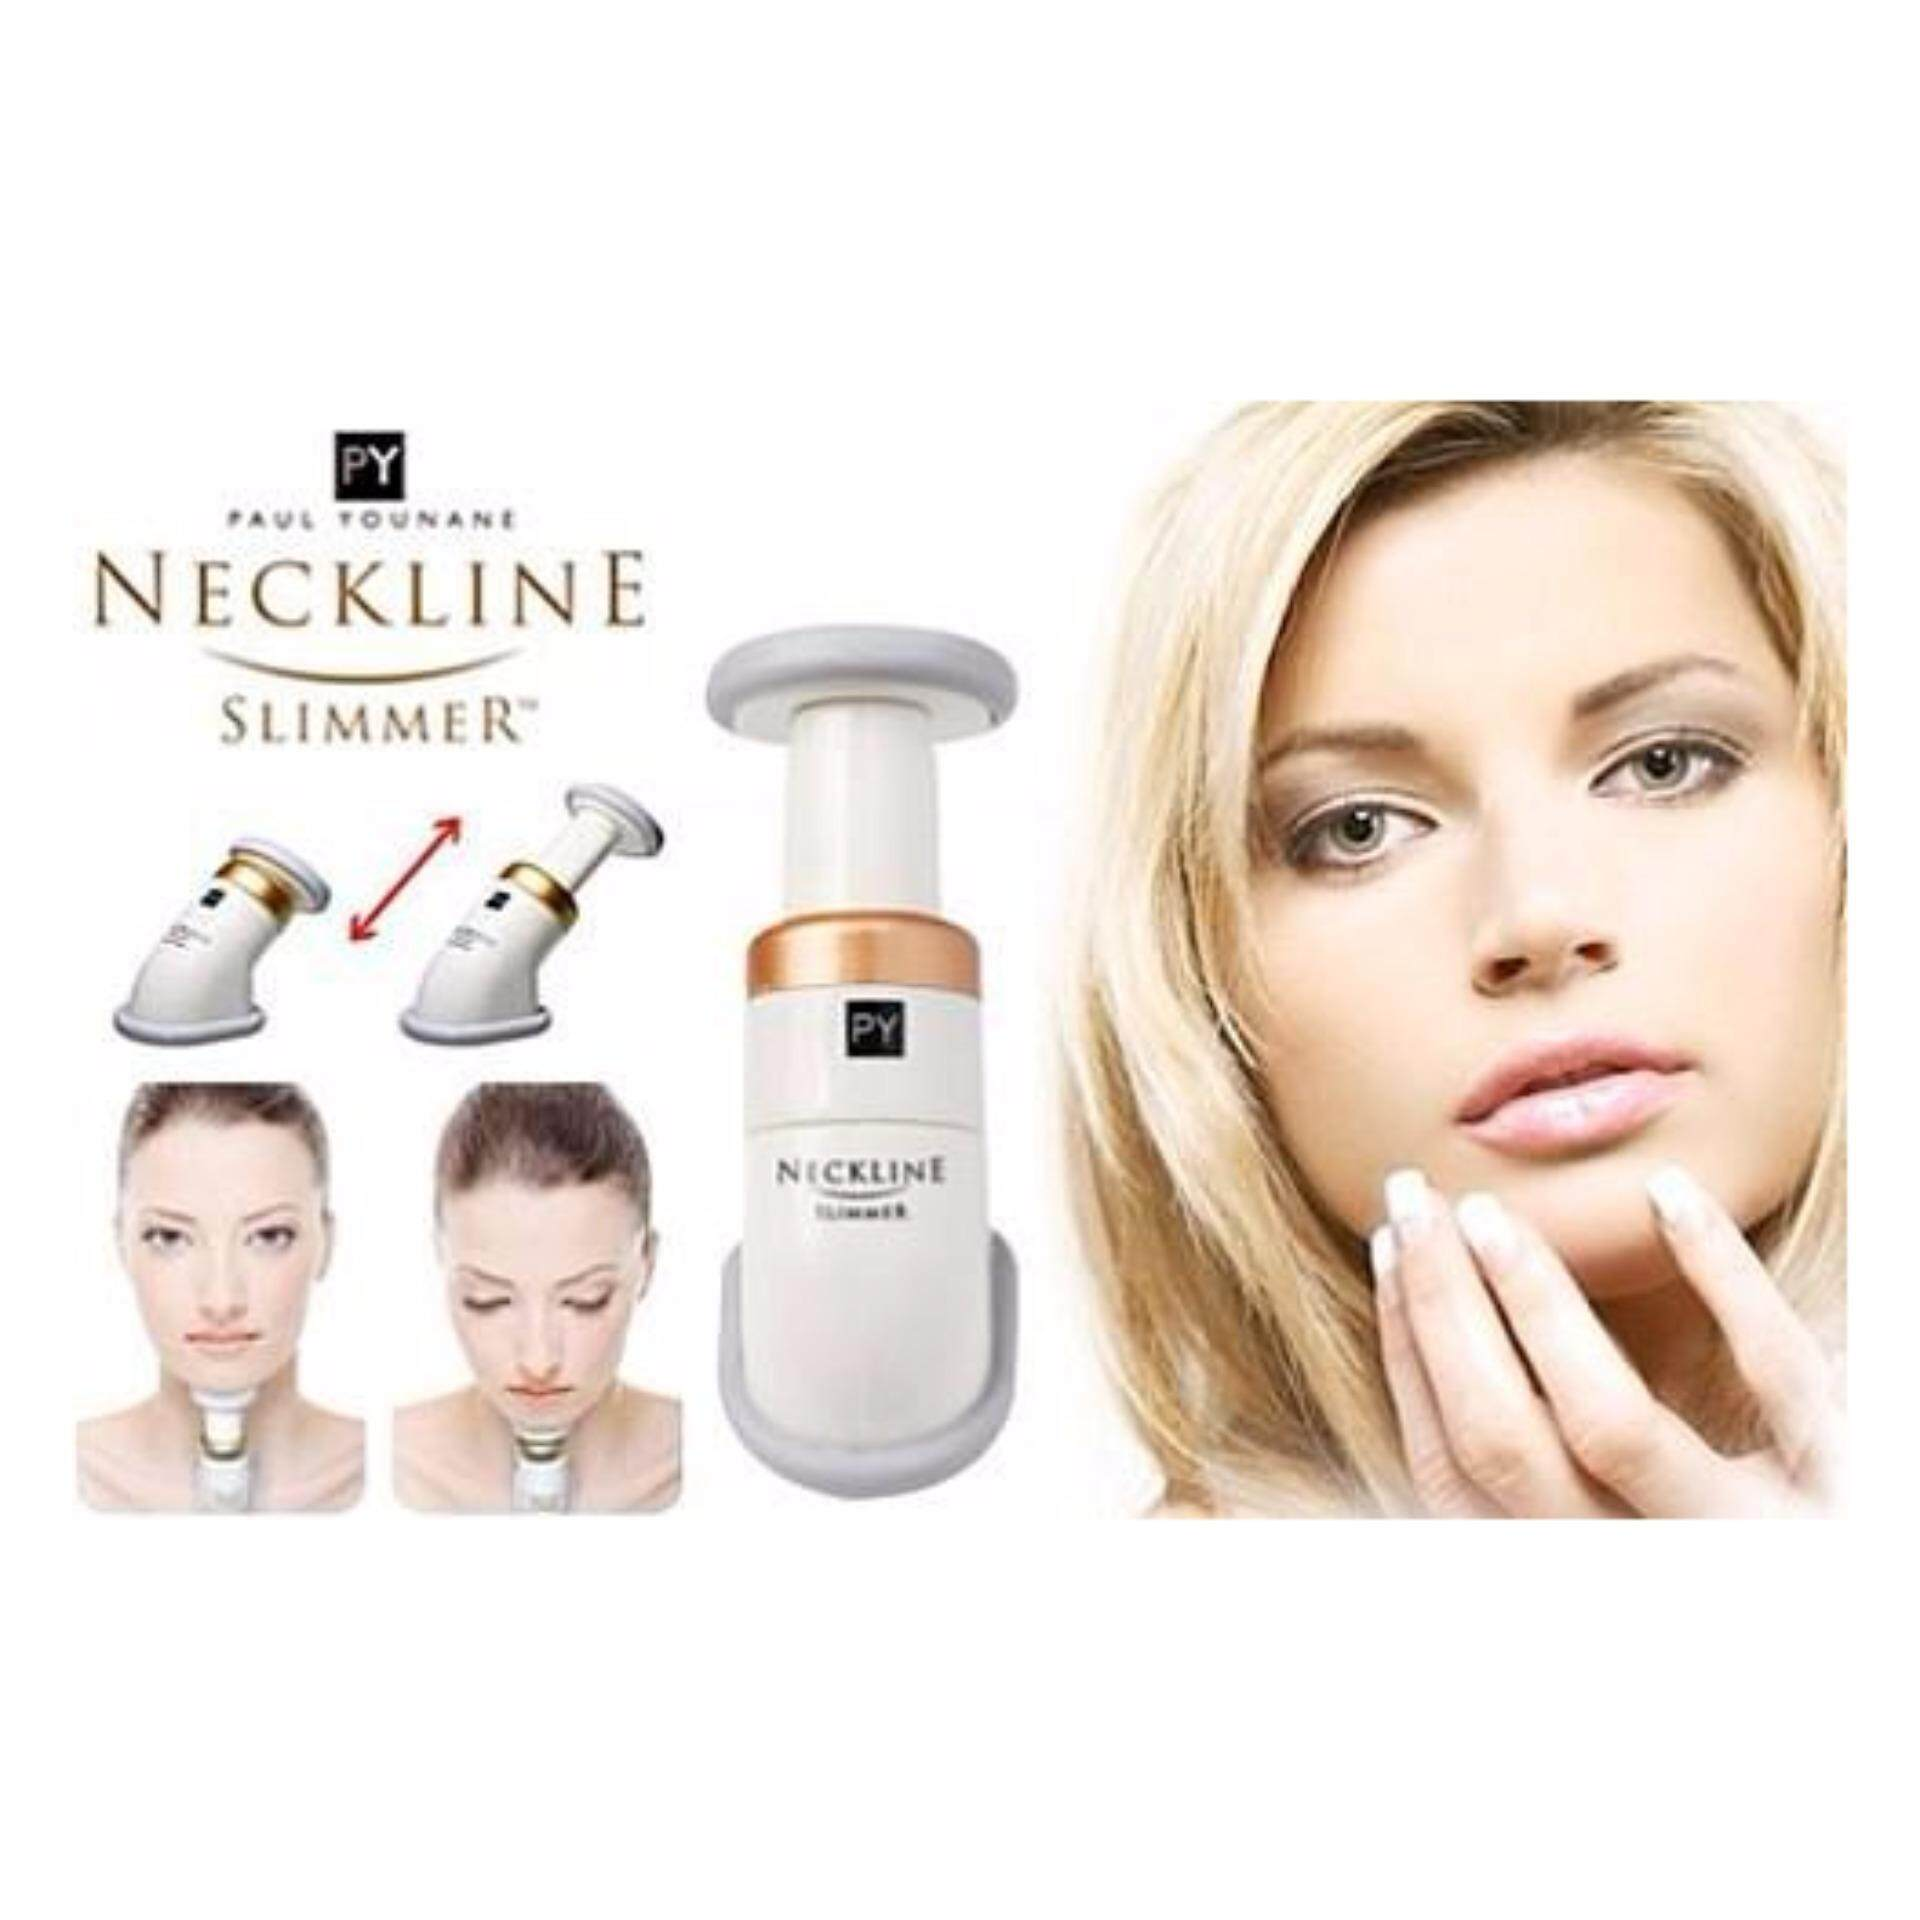 Neckline Slimmer Double Chin Massager 2 Minutes Neck Excercise Trimmer